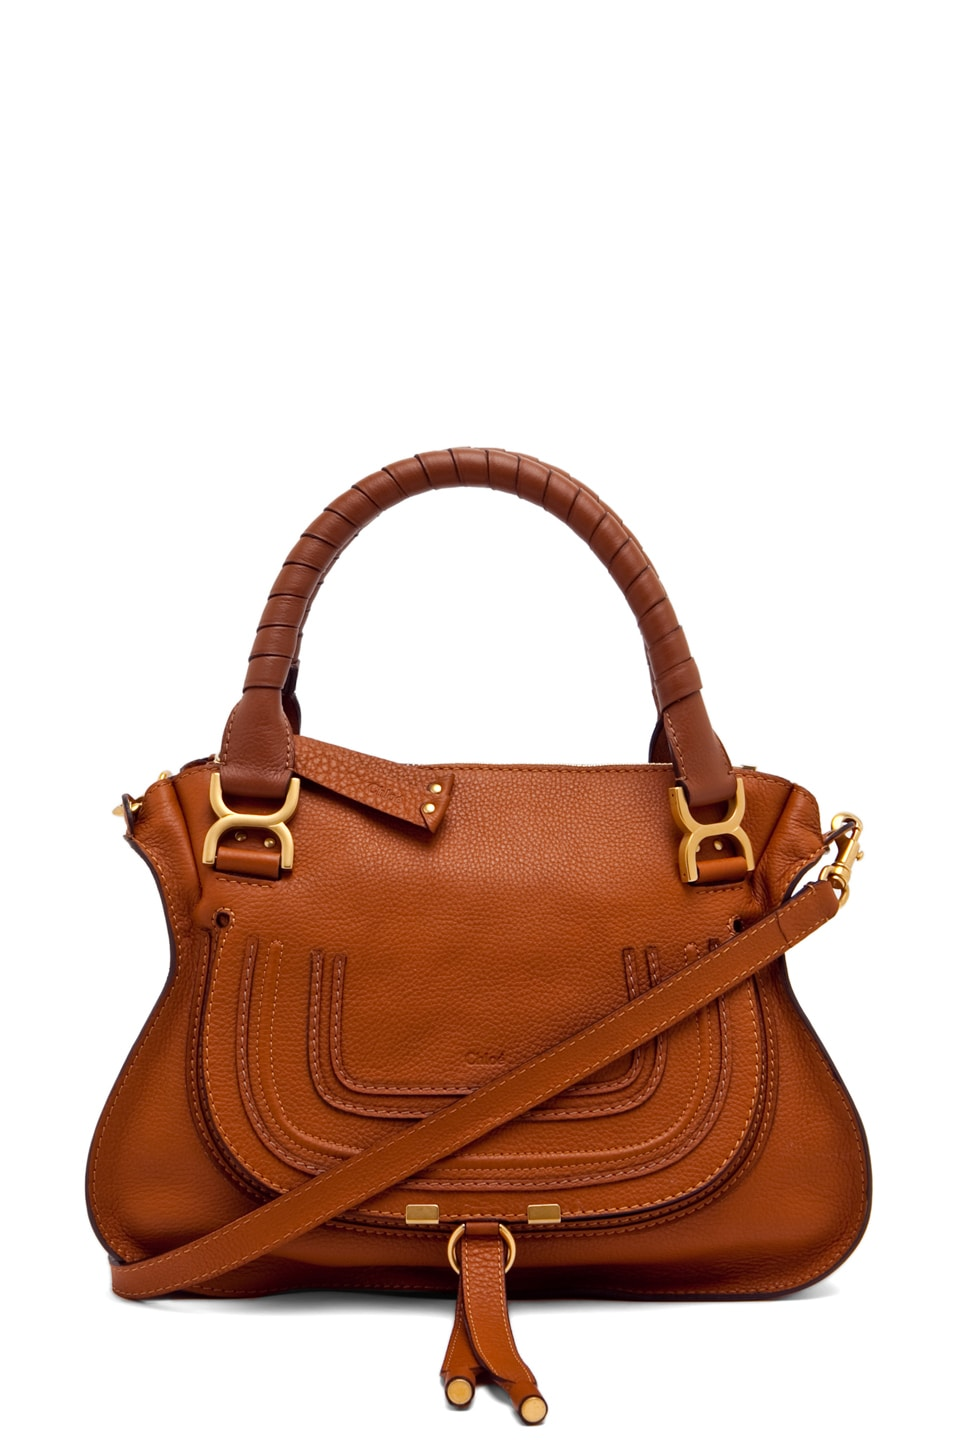 Image 1 of Chloe Small Marcie Shoulder Bag in Tan